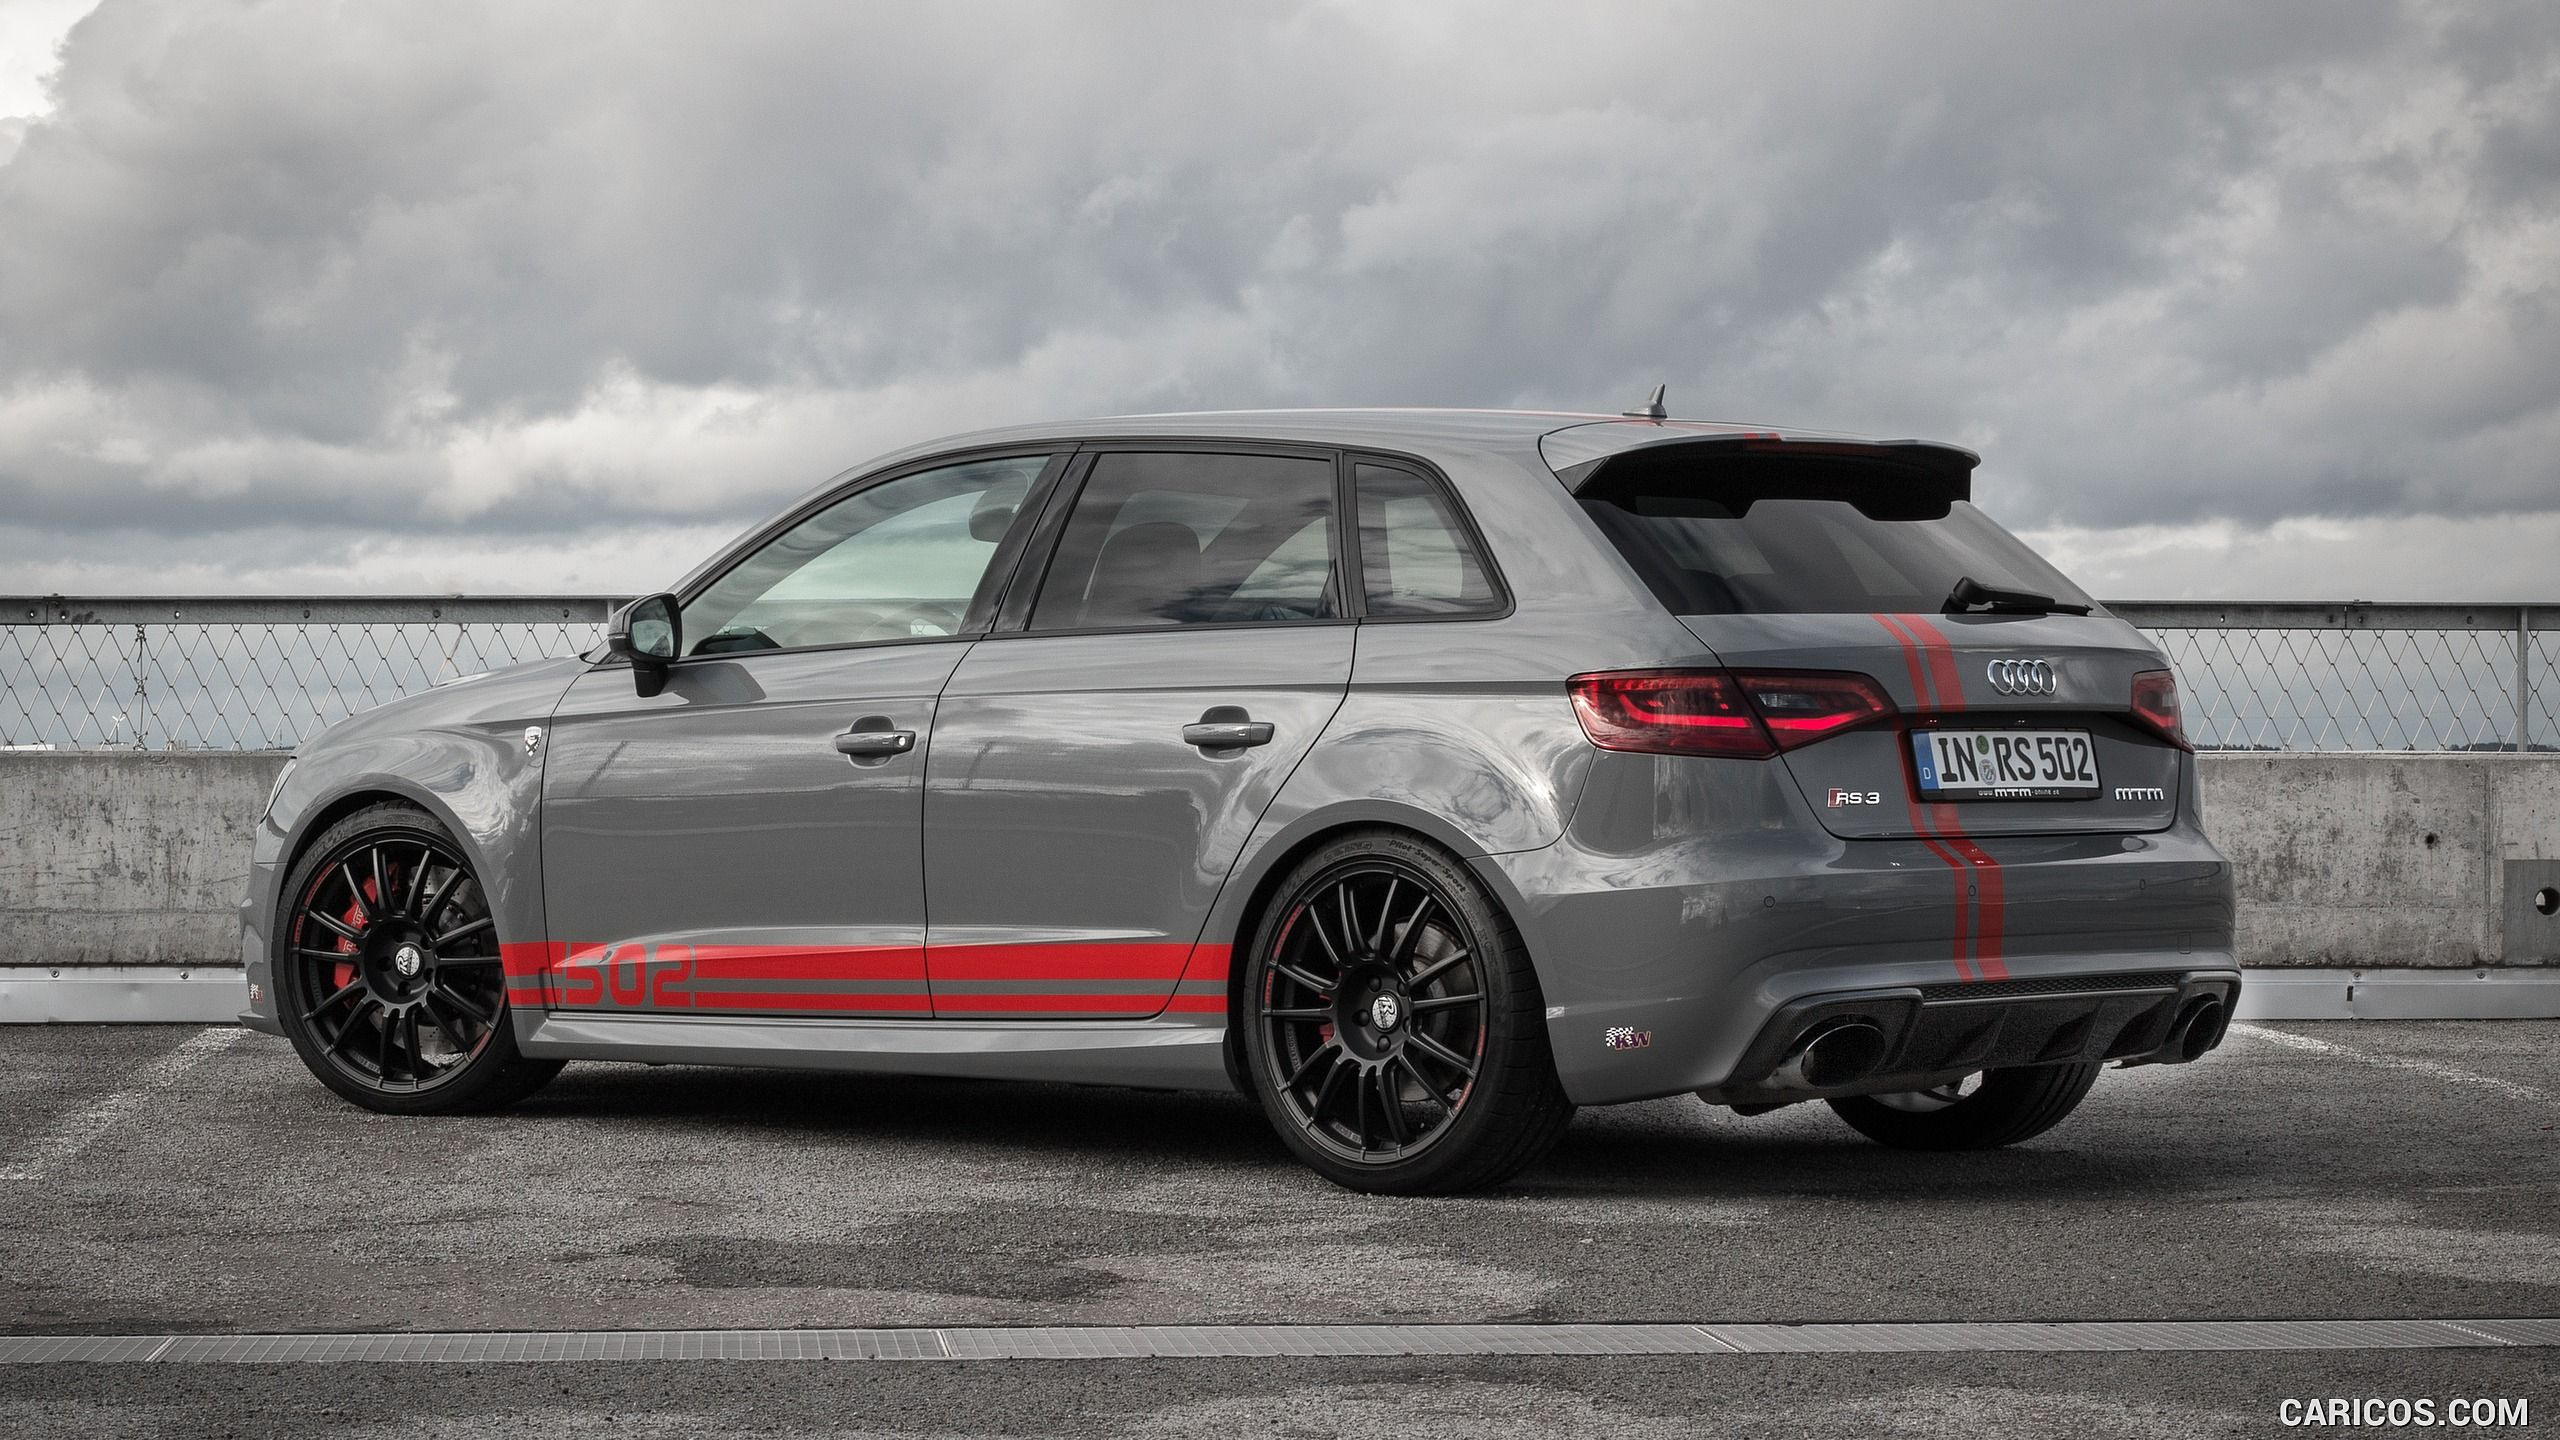 2016 Mtm Audi Rs3 R Sportback Wallpaper Things To Fill The Garage